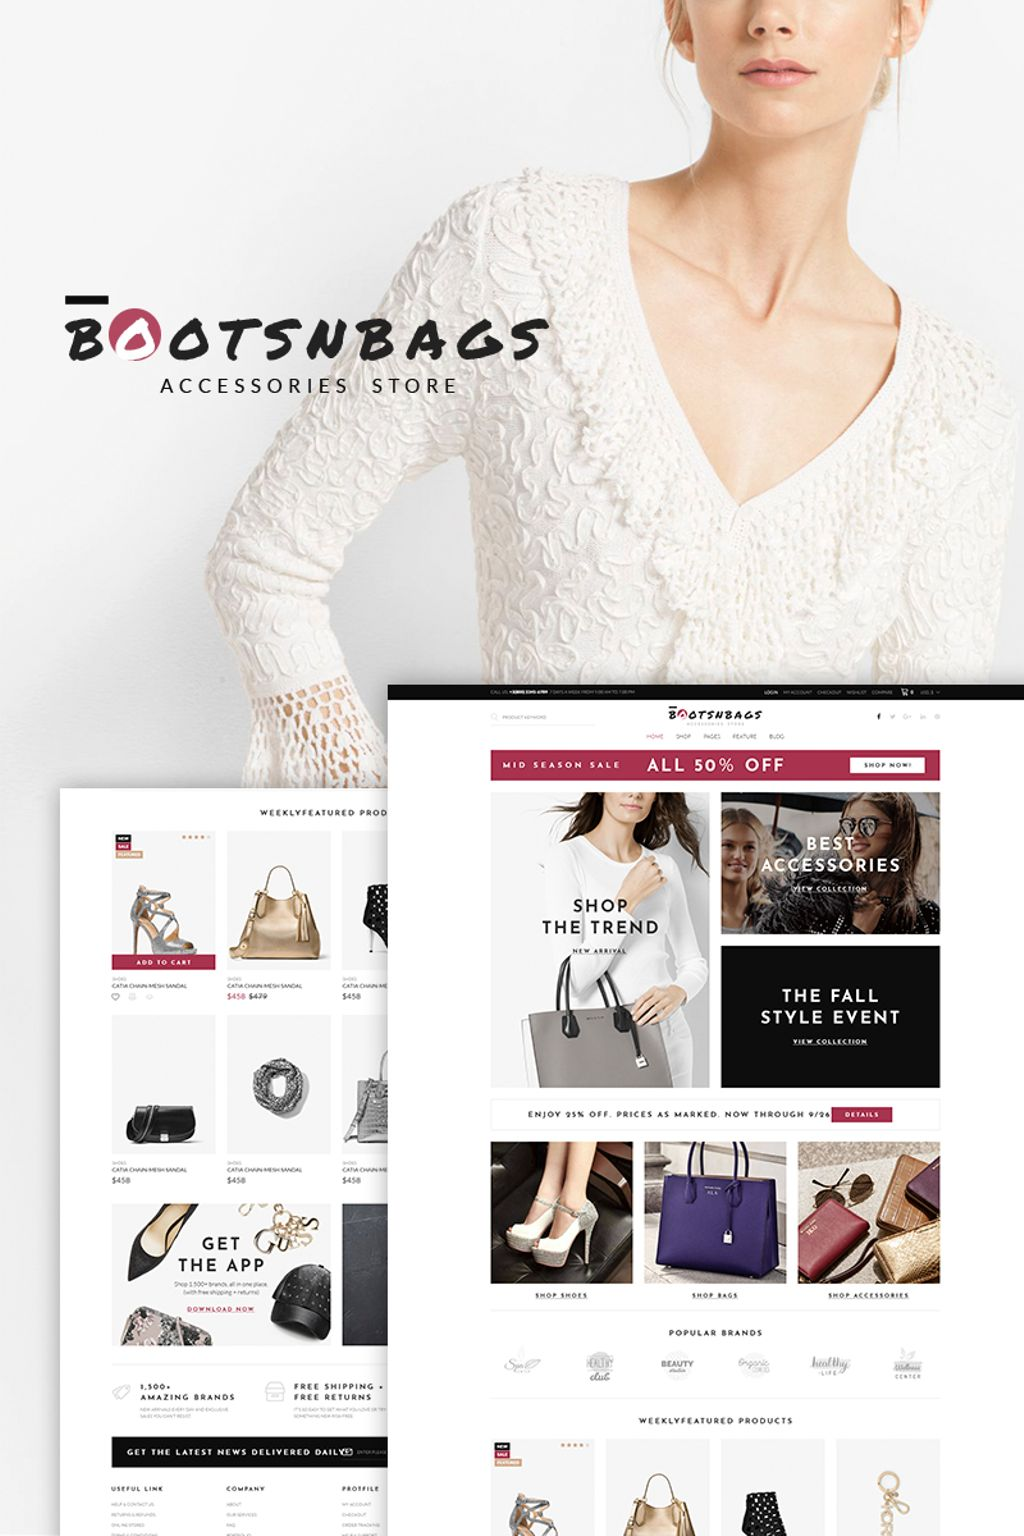 BootsnBags - Accessories Store WooCommerce Theme - screenshot